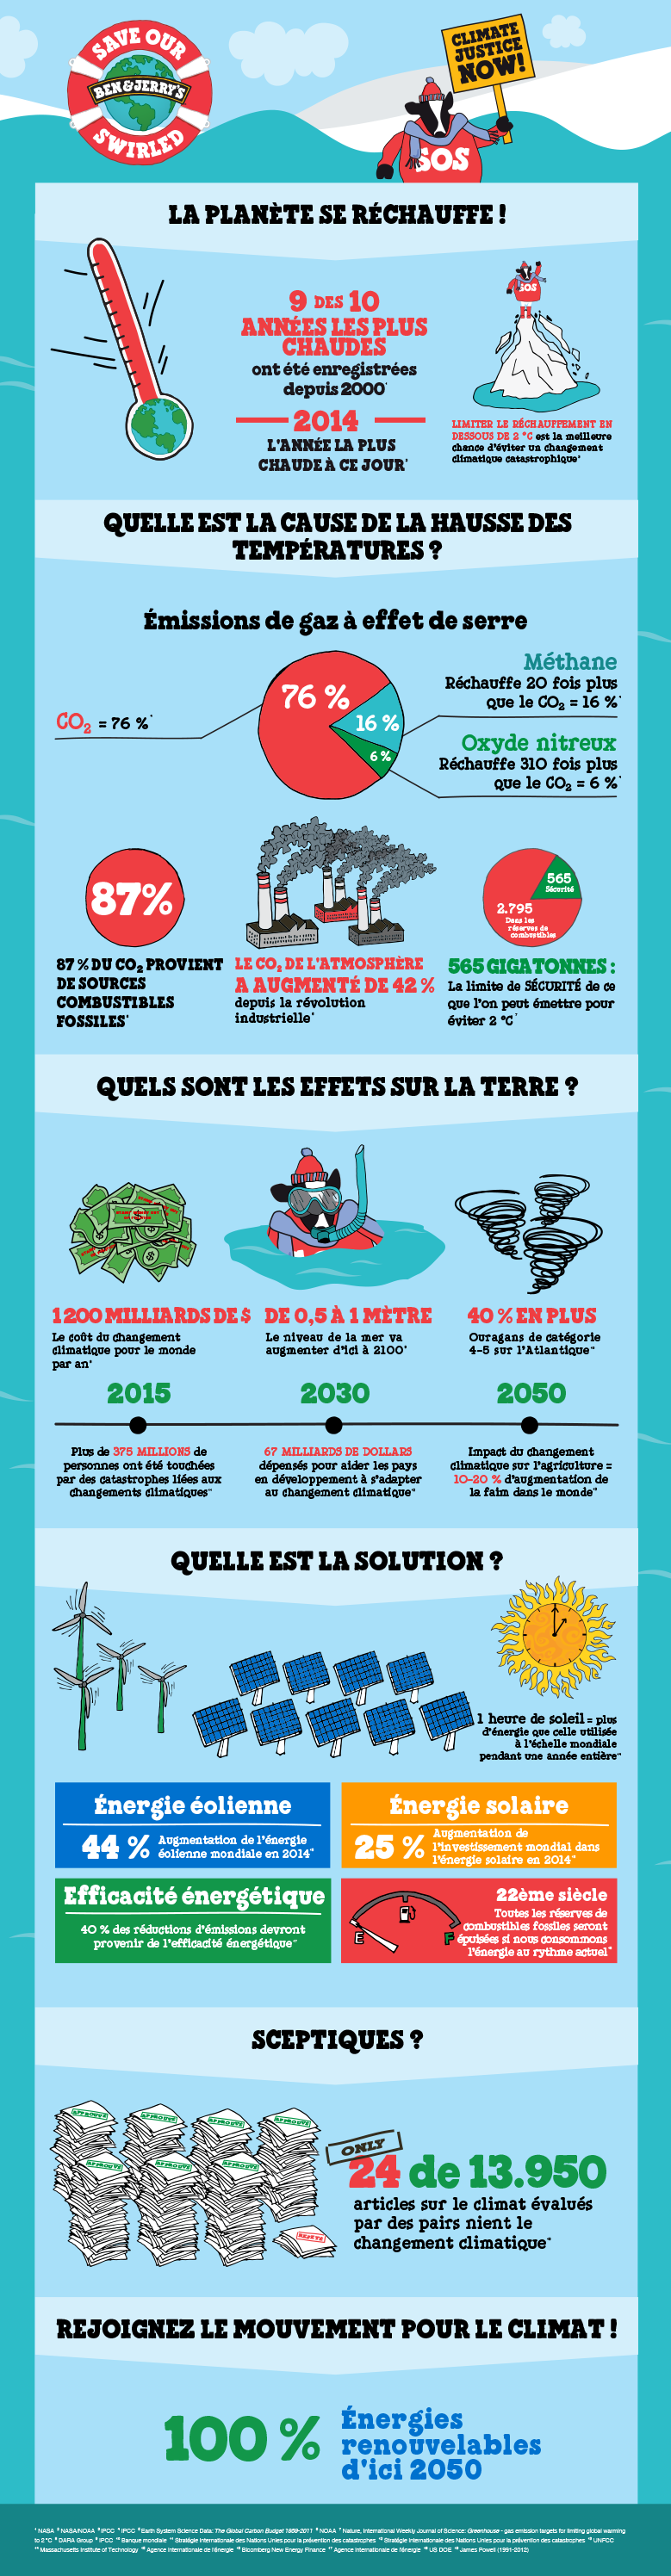 BJ_ClimateChange_Infographic_French-(France)